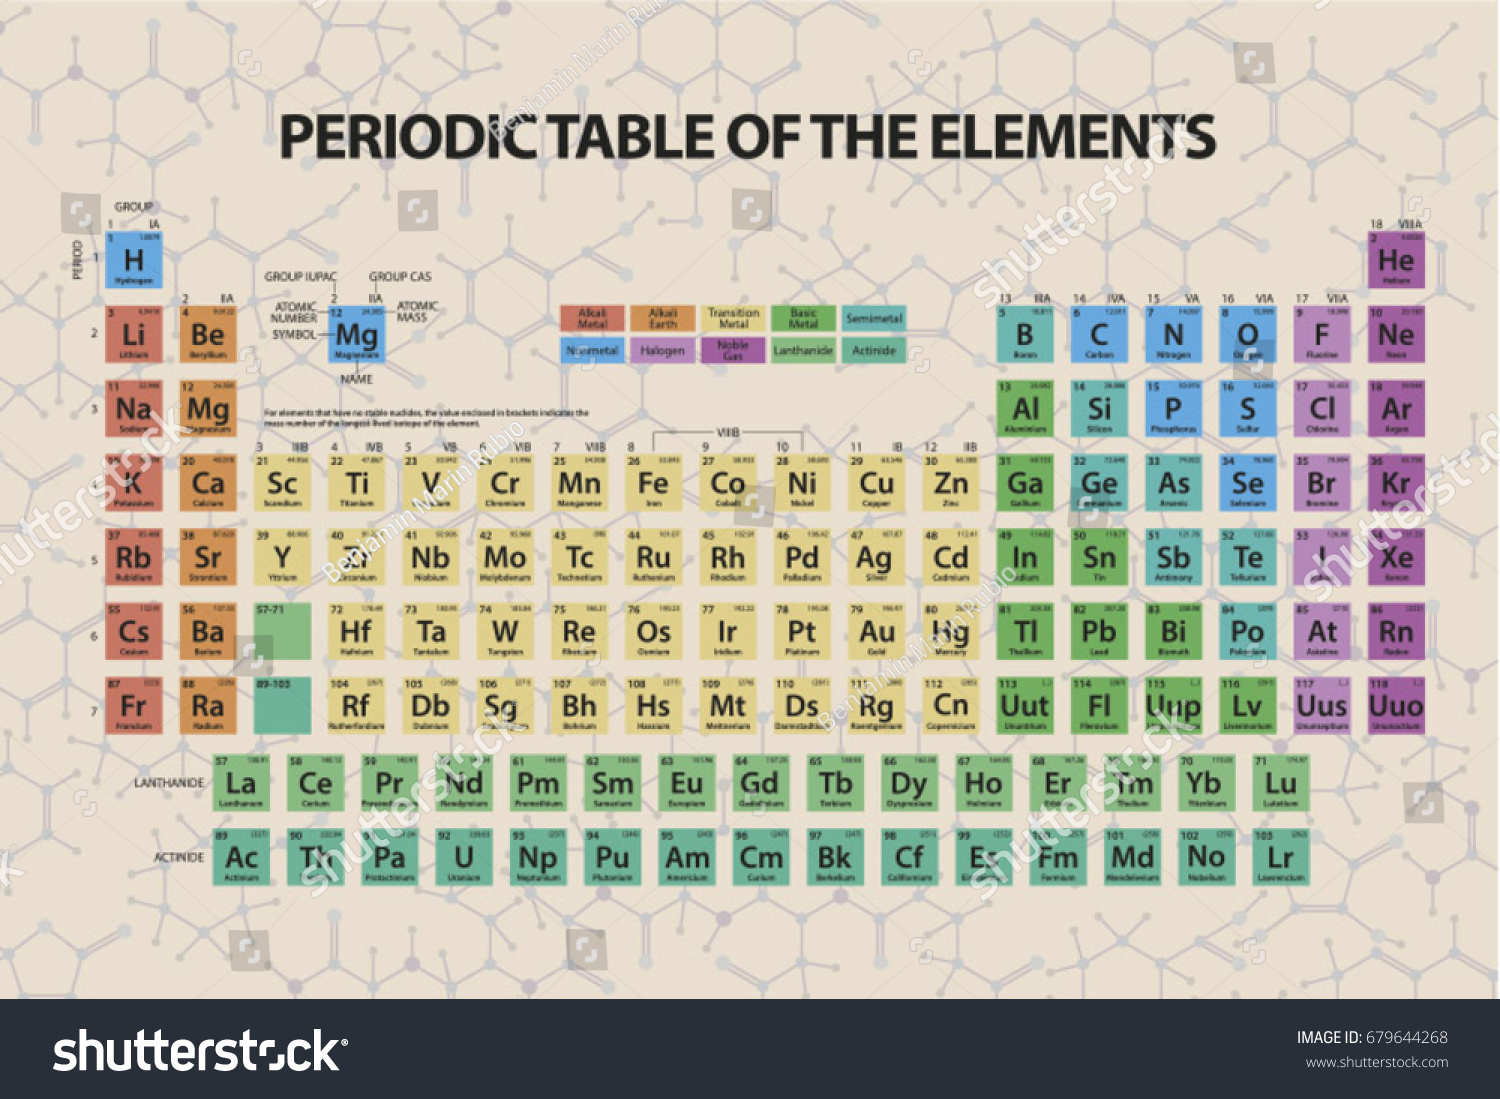 Periodic table elements on chemical background stock vector periodic table of the elements on chemical background pooptronica